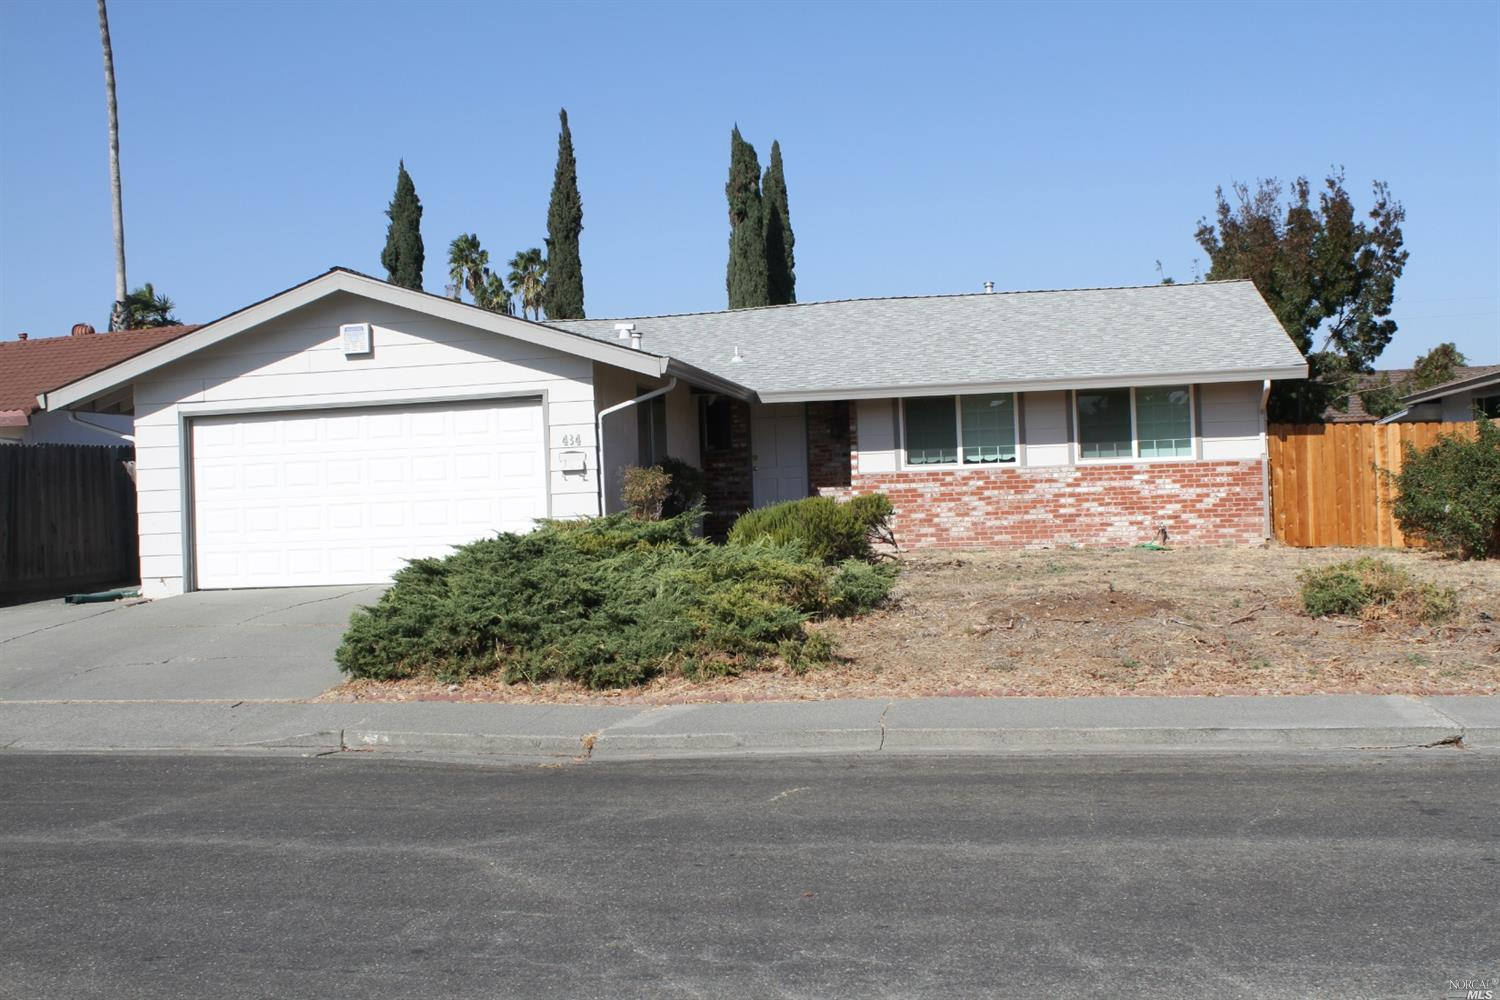 Were you looking for a 4/2 not too far from the freeway but not too close? Here it is! Roof was replaced 12 years ago. This home has tons of potential. Come check it out and imagine what you could turn this wonderful home into.